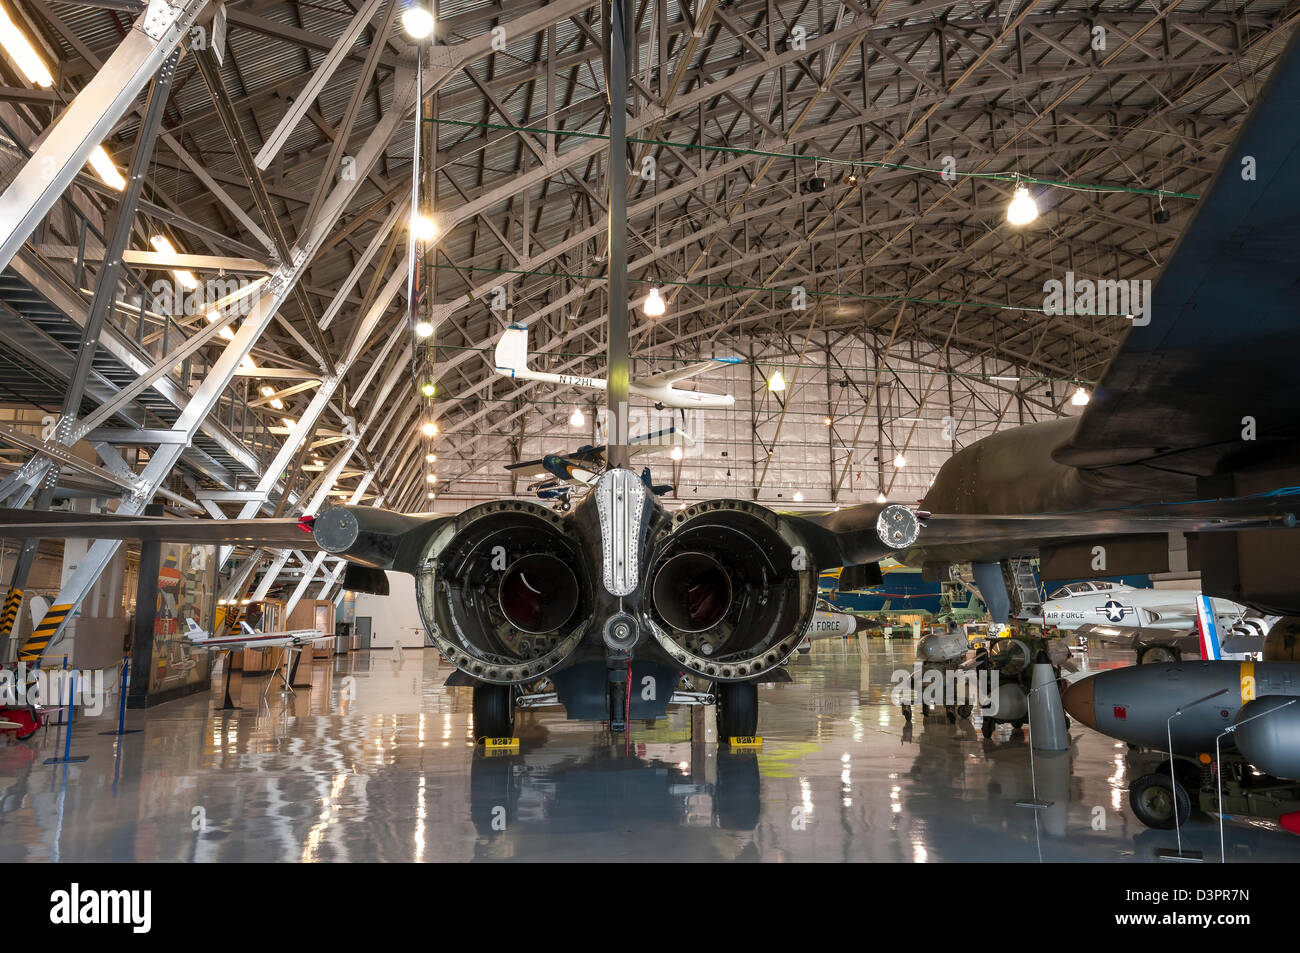 General Dynamics F-111 Aardvark, Wings over the Rockies Air and Space Museum, Denver, Colorado. - Stock Image